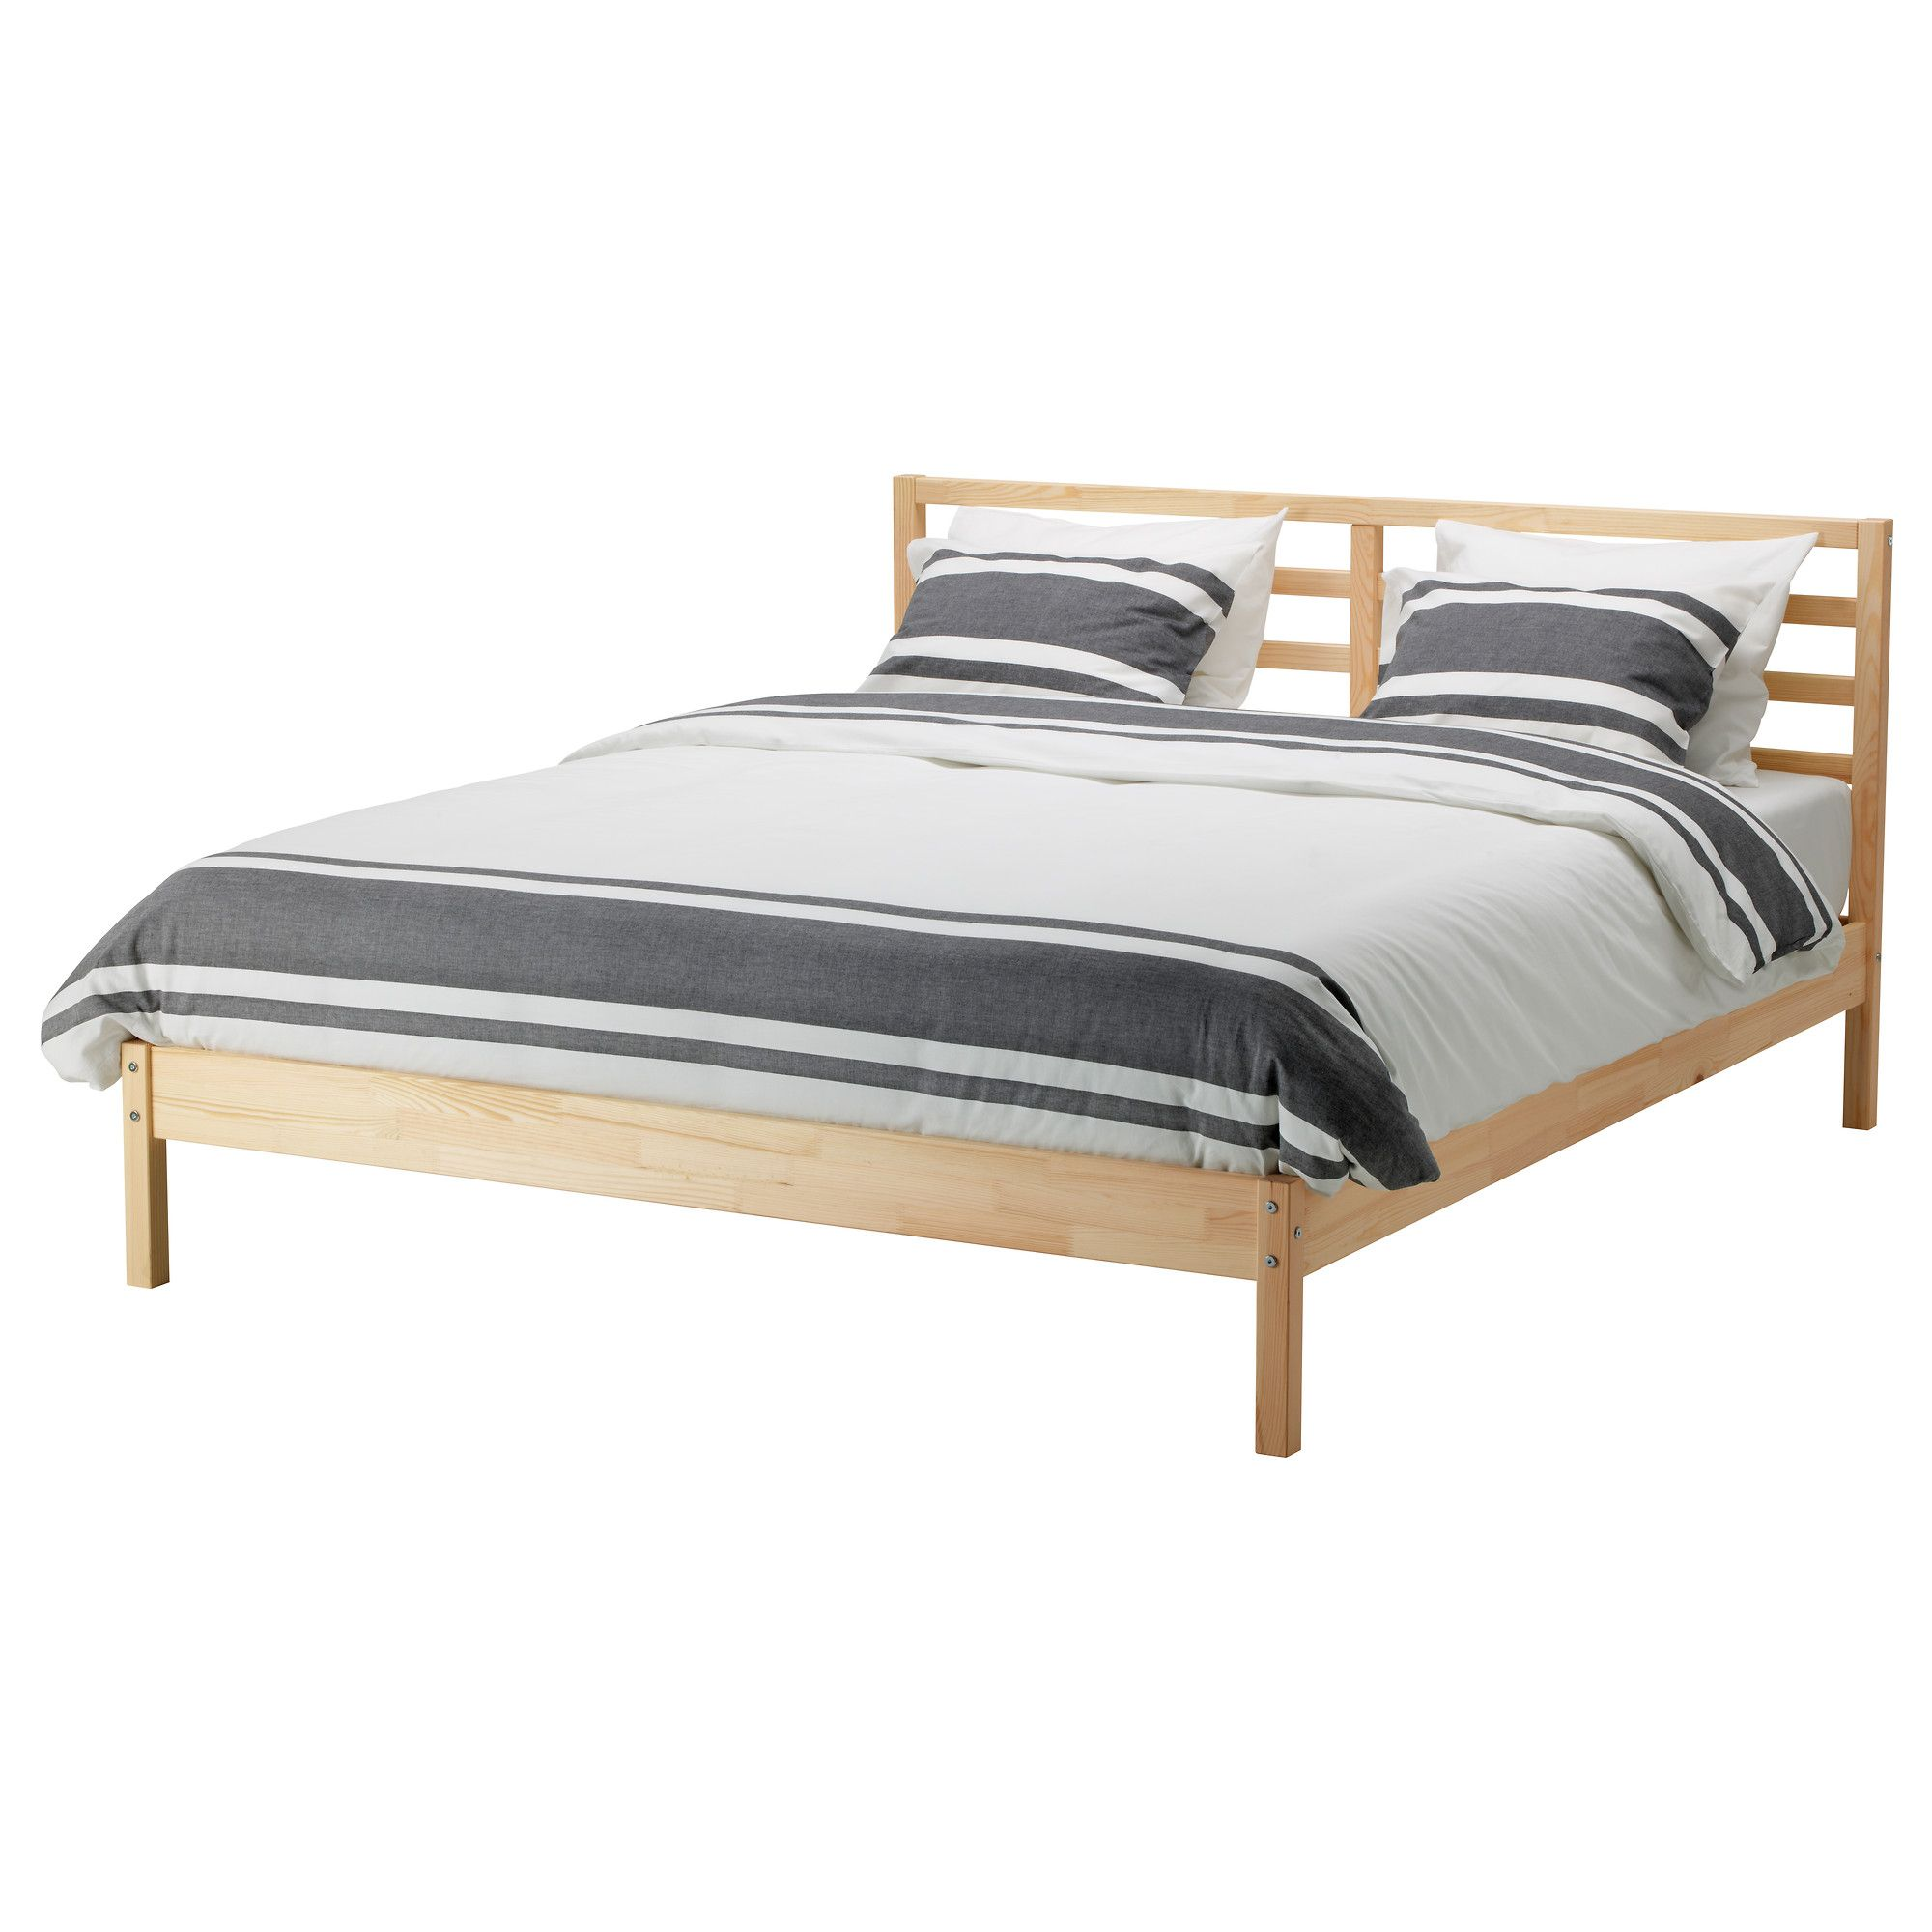 Ikea Lillesand Bed Frame For Sale – My Delicate Dots Portofolio